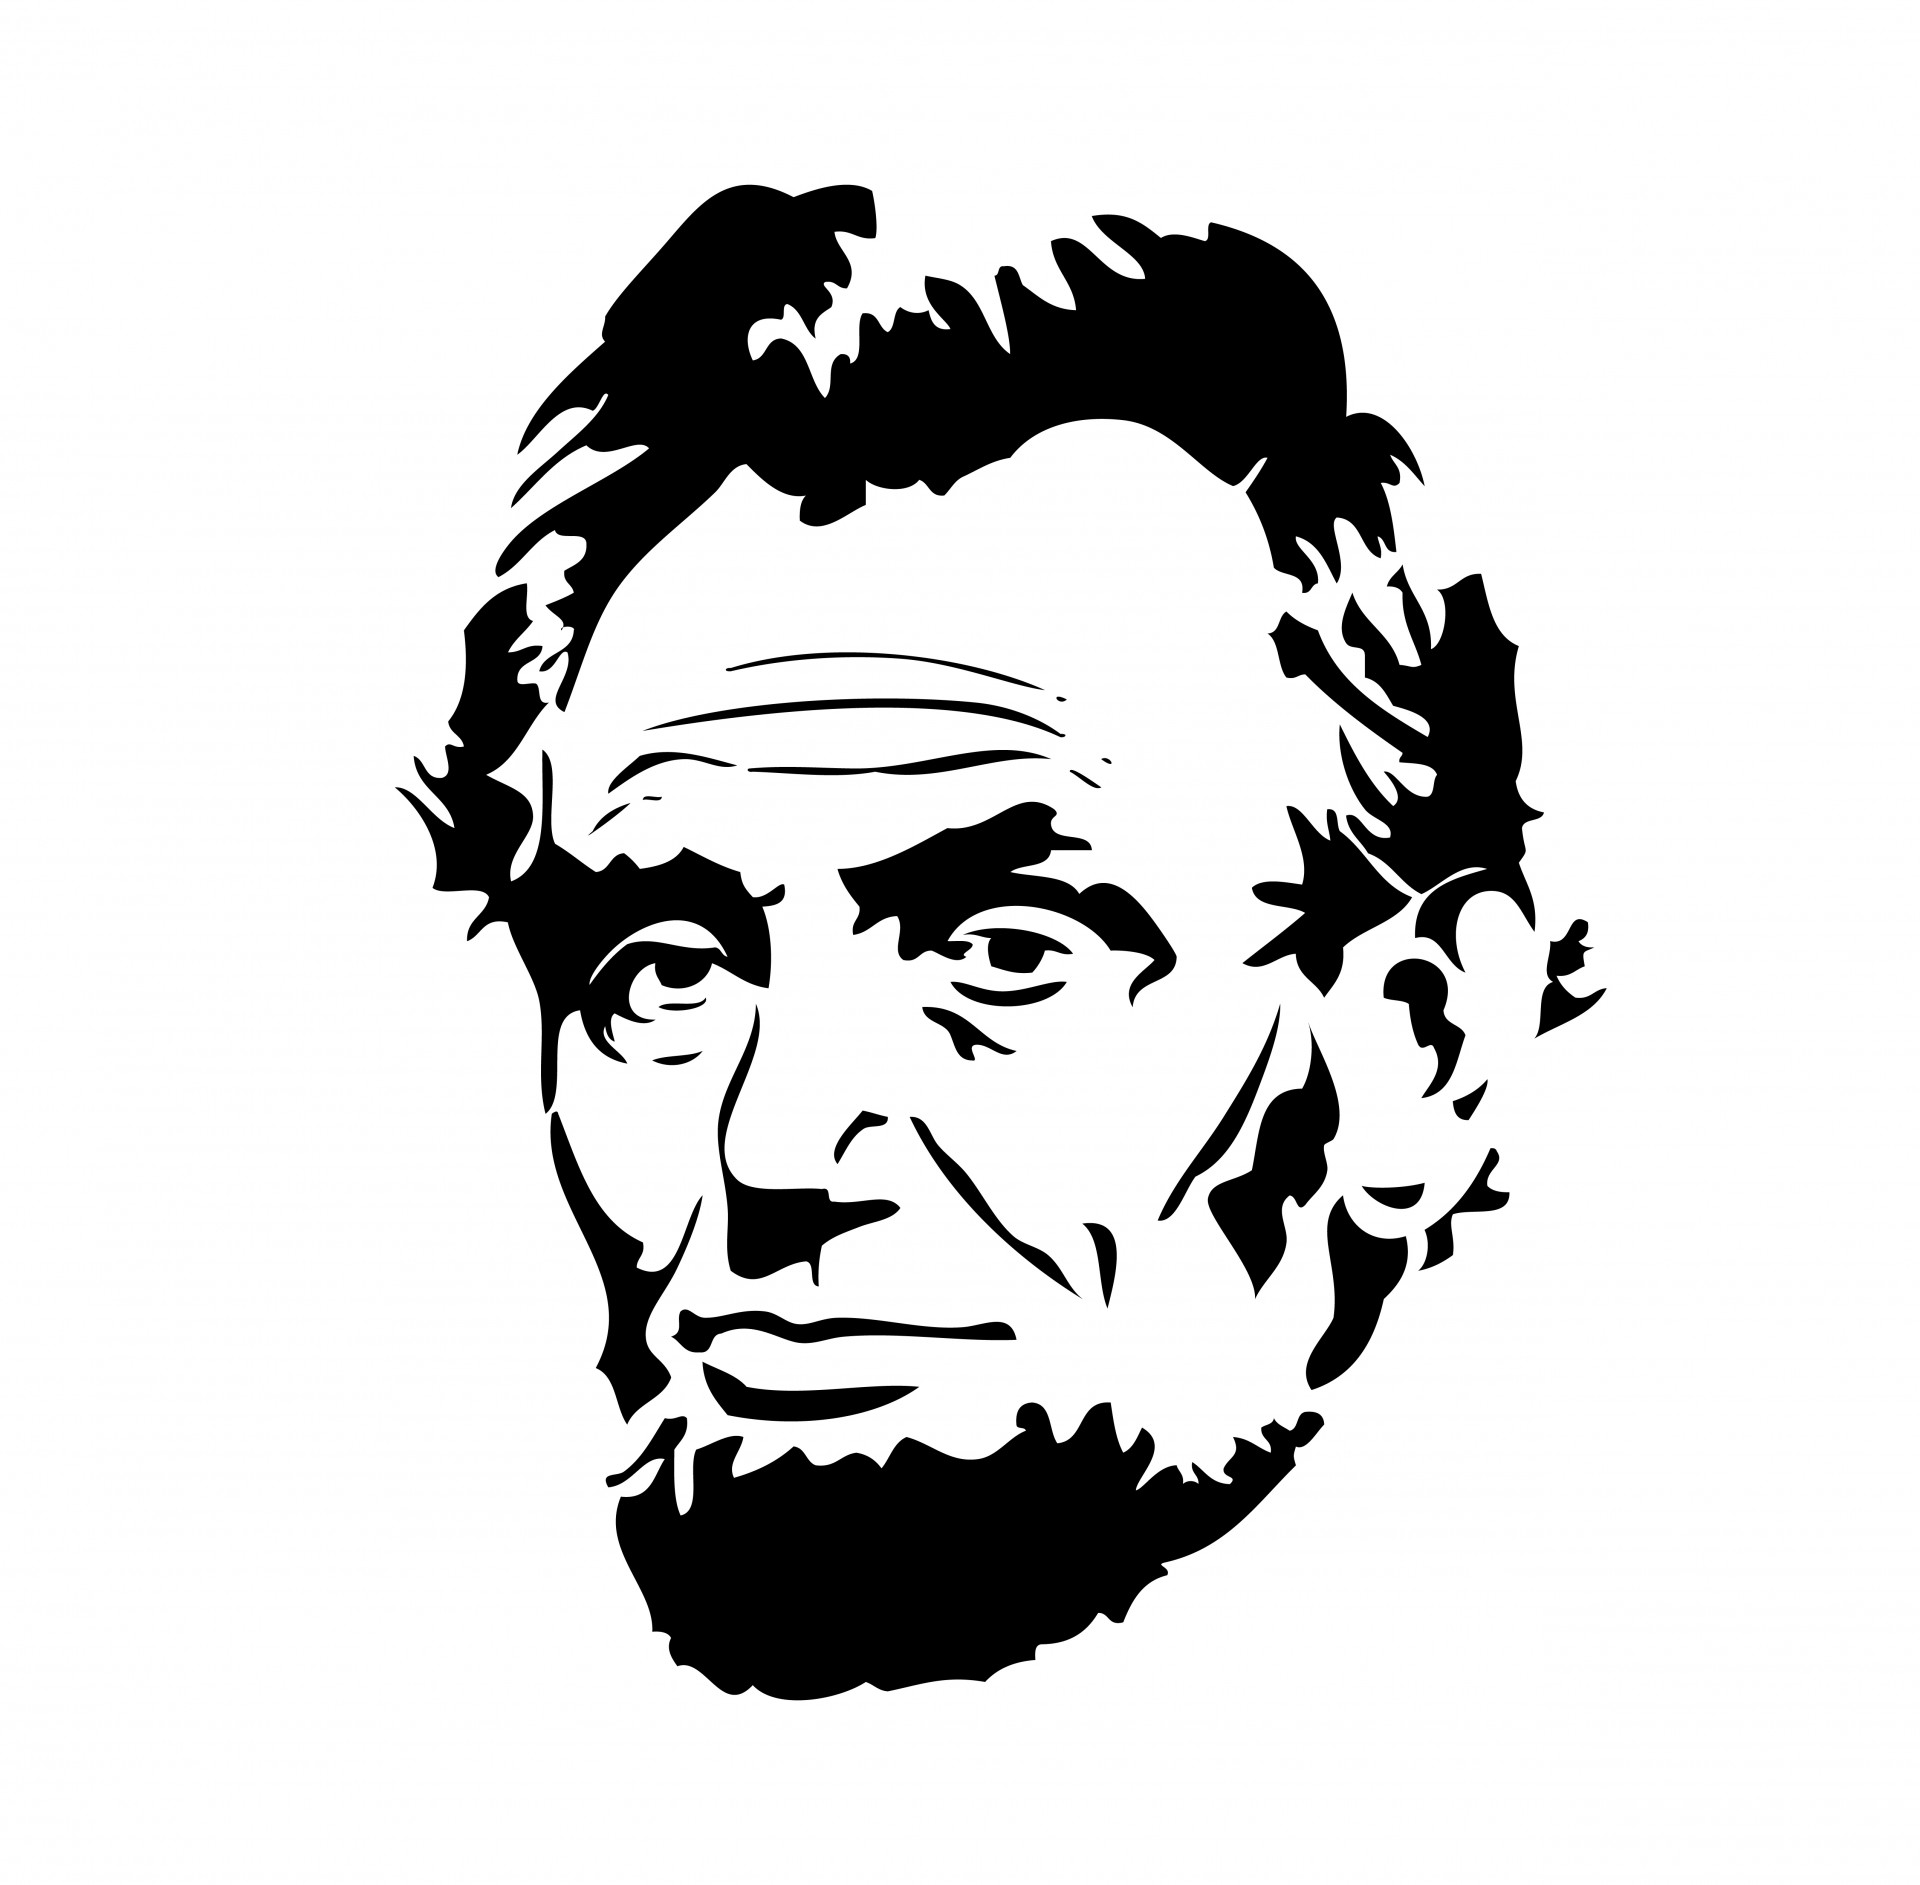 Monument clipart abraham lincoln Photo Public Lincoln Clipart Abraham